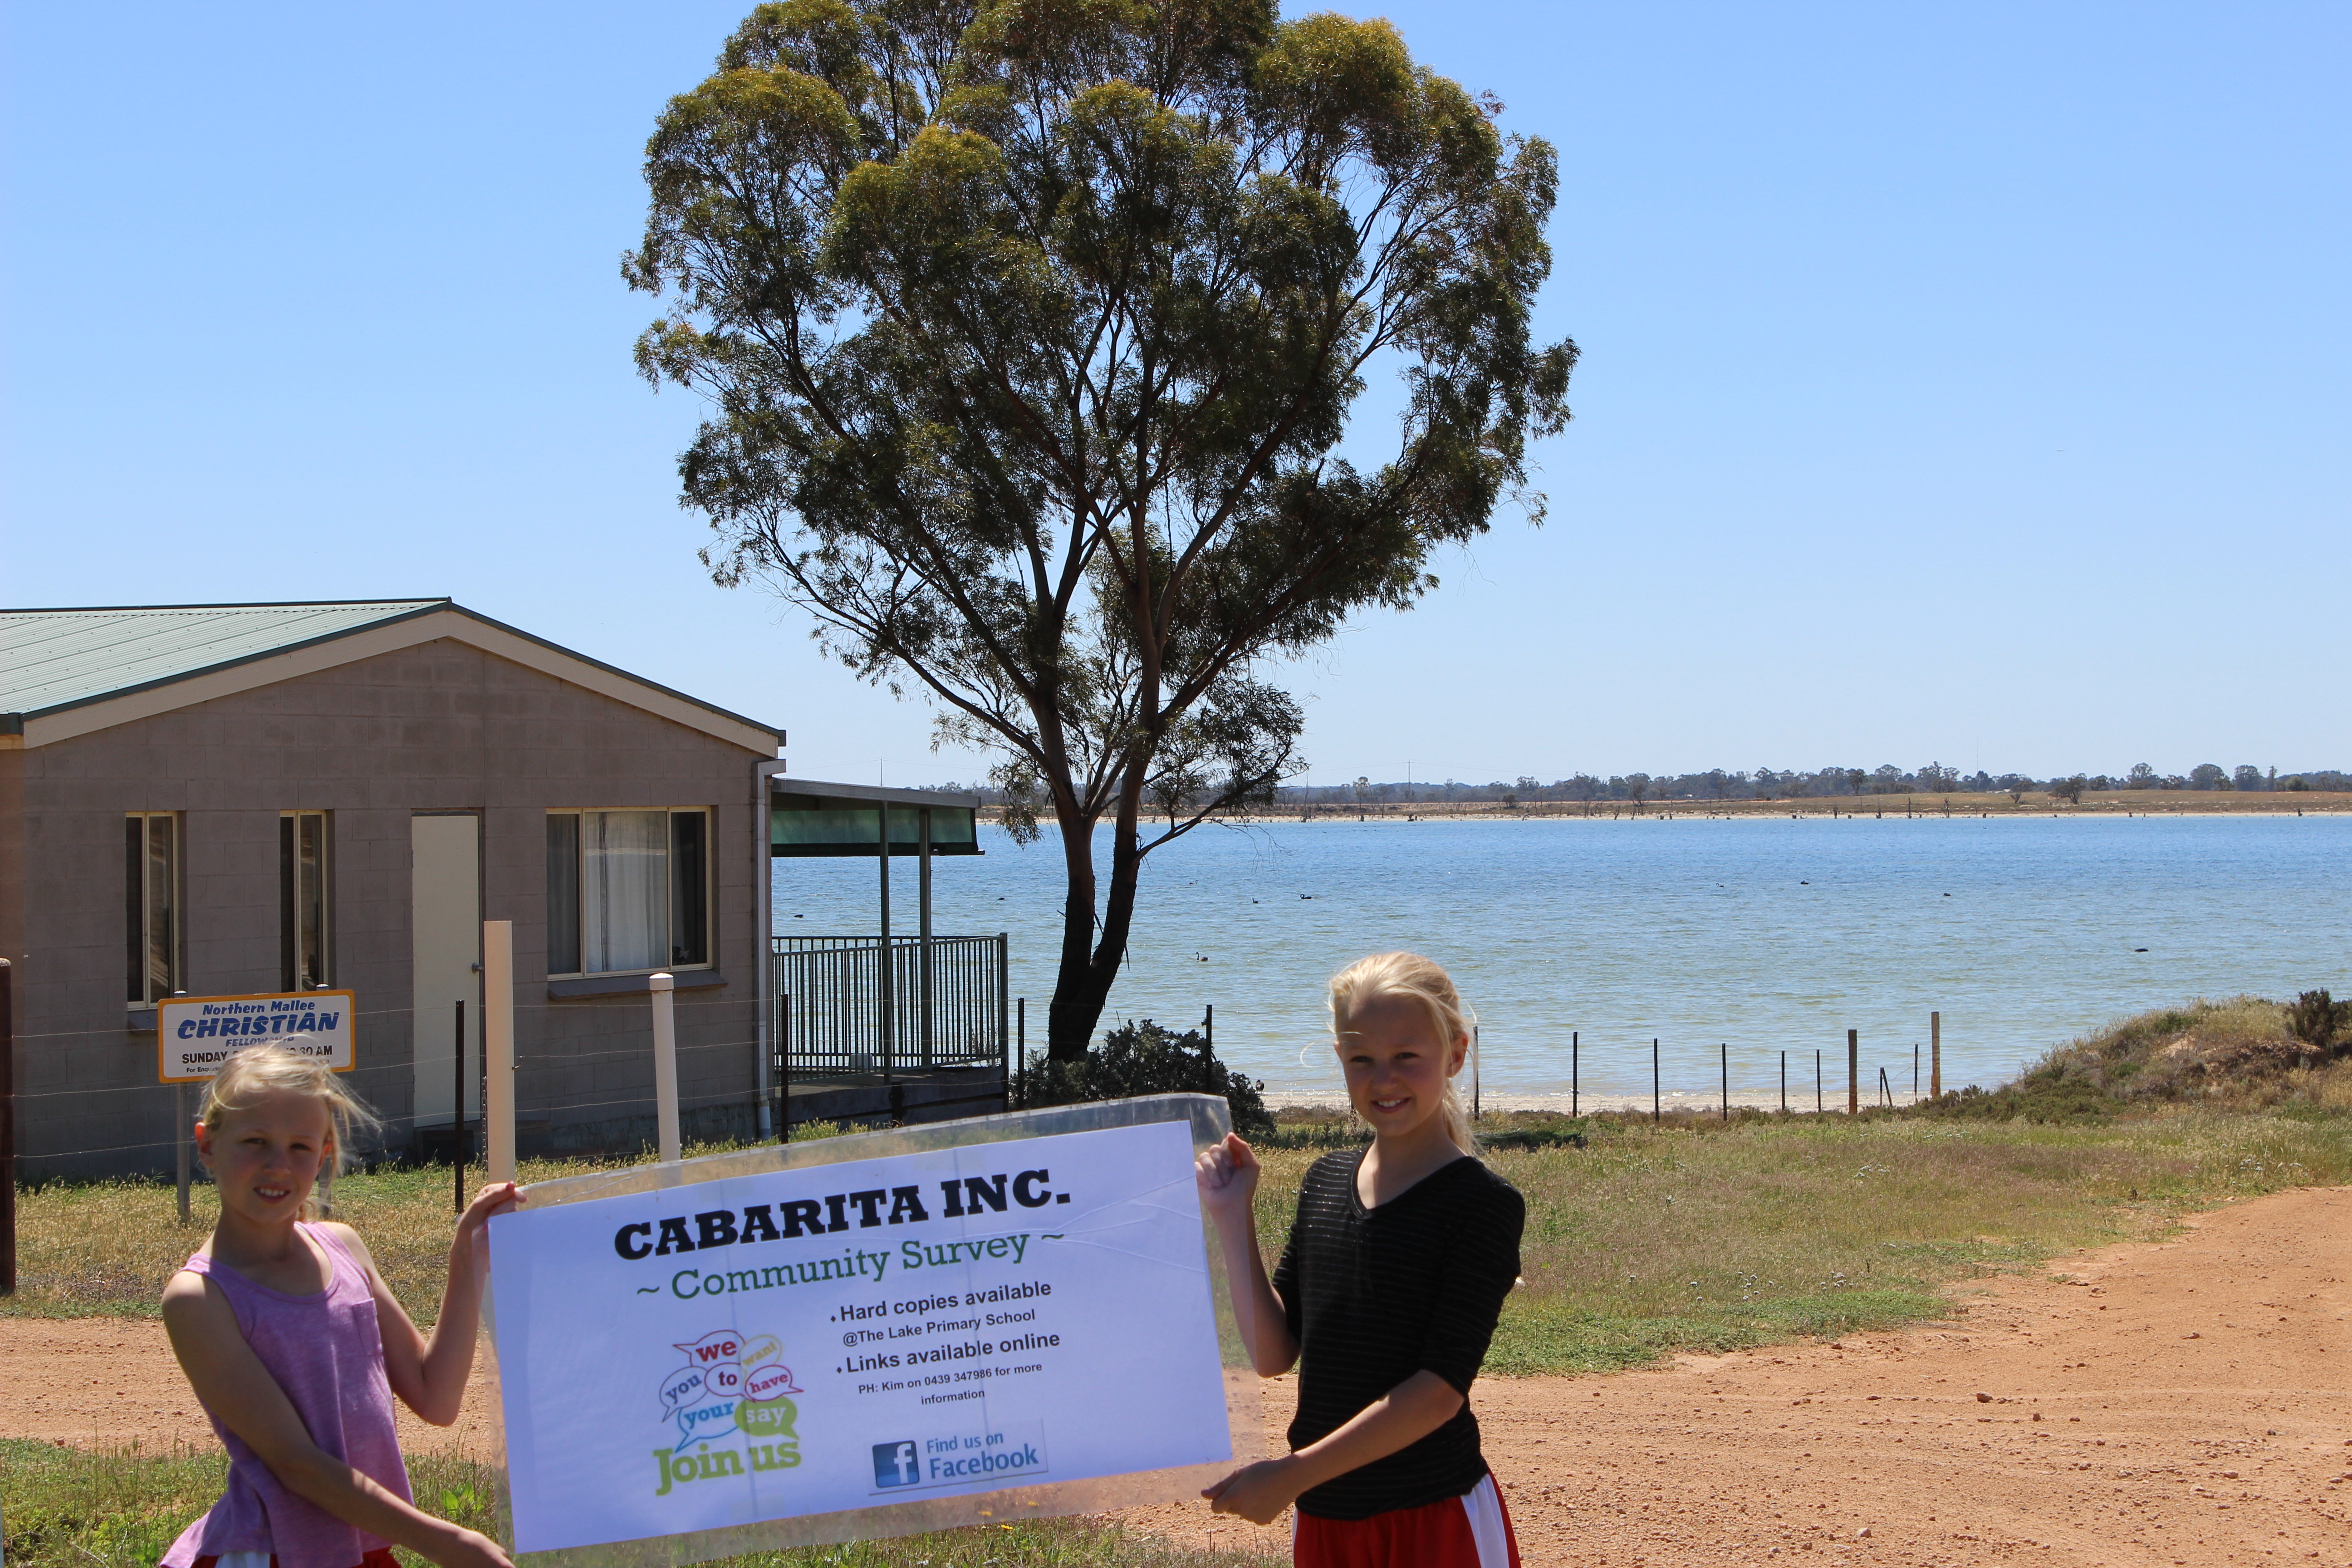 Cabarita Community Survey